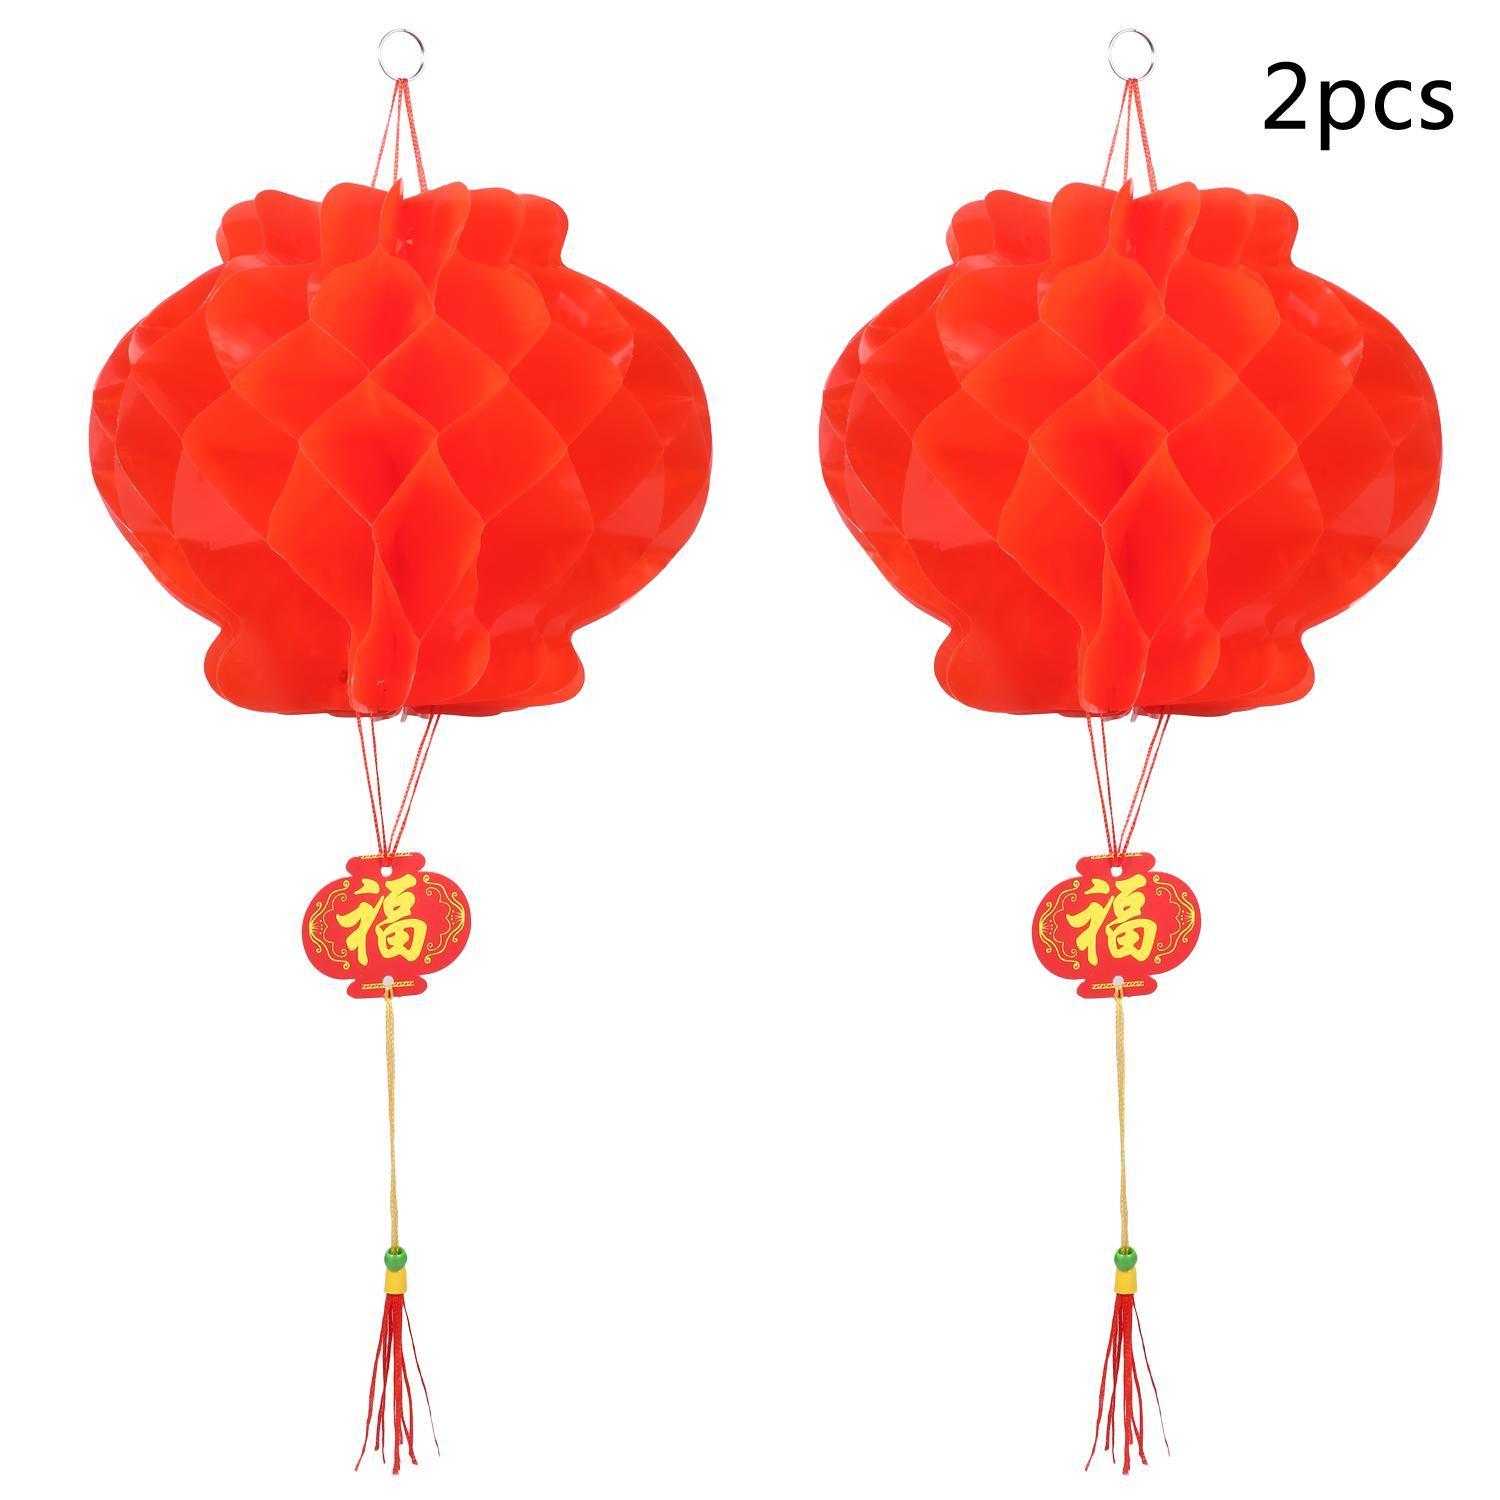 Clearance  Elecmall  2pcs Chinese Red Lanterns For New Year Chinese Spring Festival Wedding Festival Restauran Decoration Elec